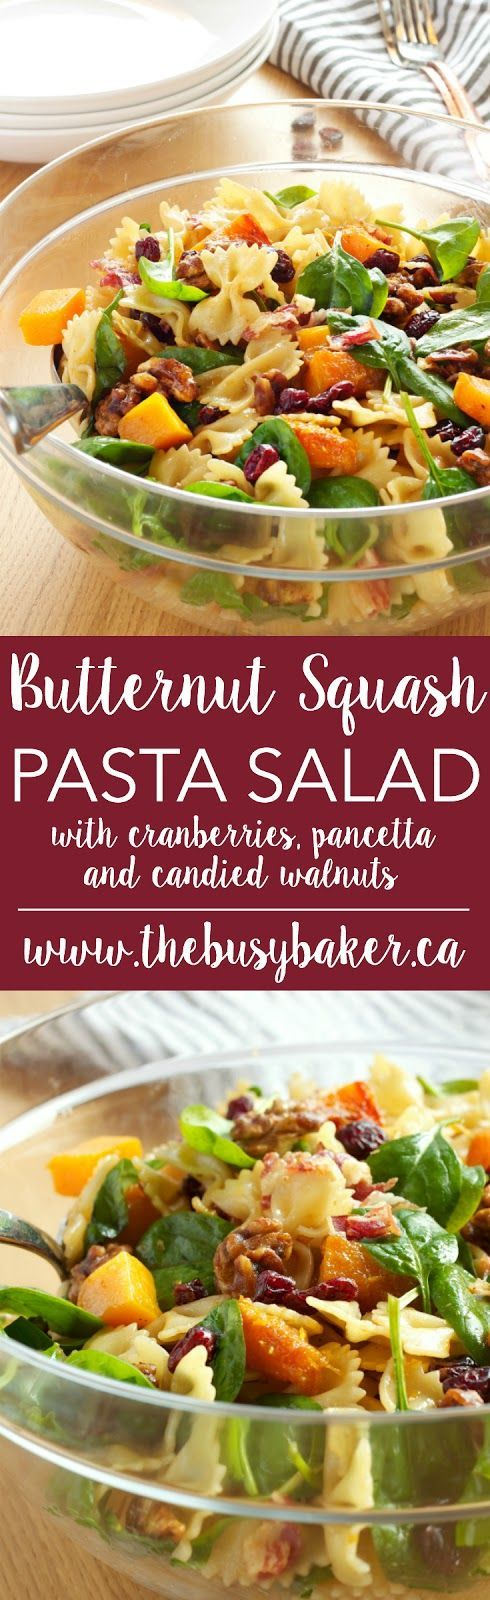 Butternut Squash Pasta Salad with Cranberries, Pancetta and Candied Walnuts www.thebusybaker.ca @barillacan #ad